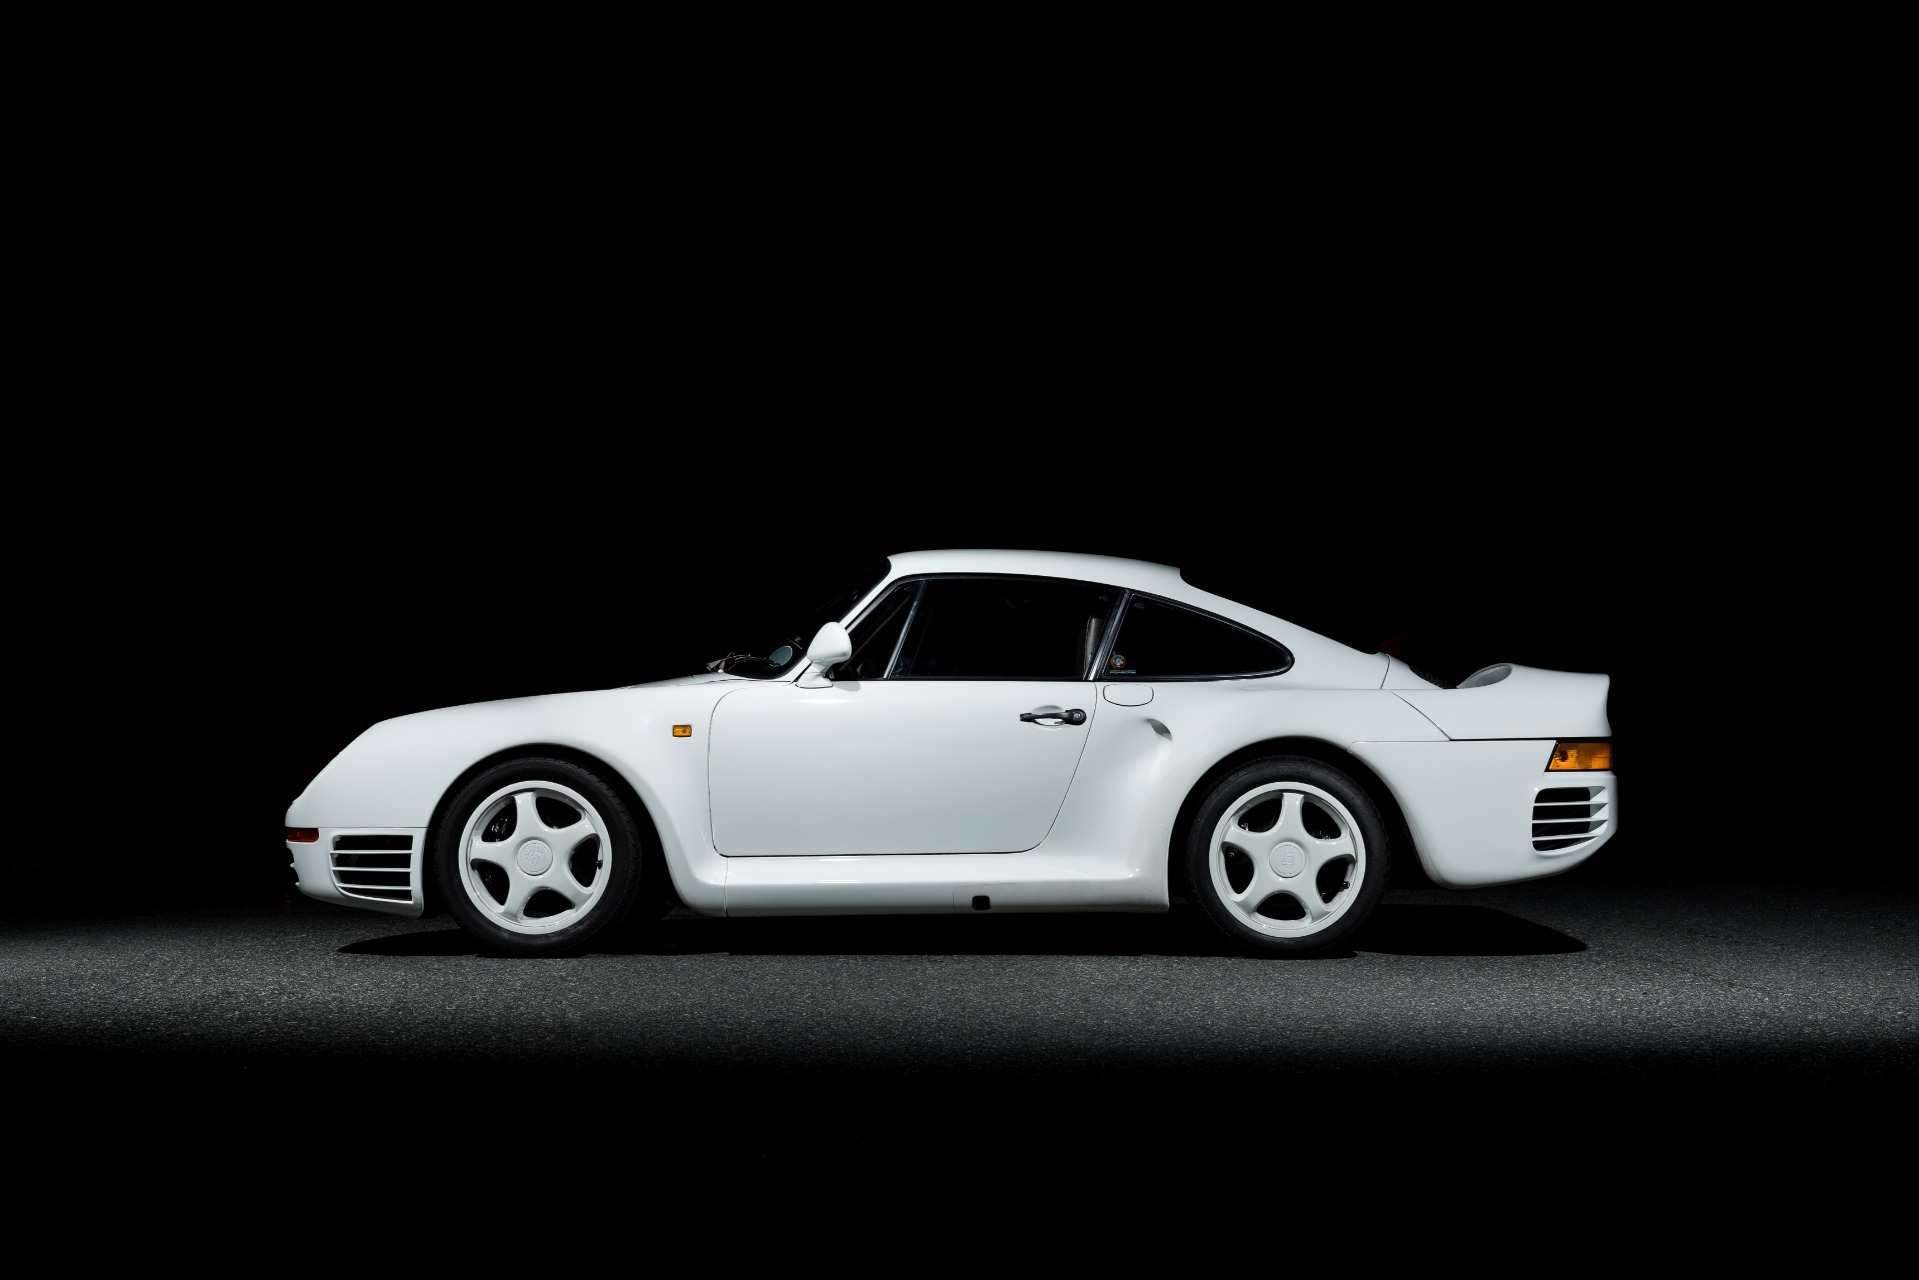 Used 1988 Porsche 959 KOMFORT COUPE / AWD / 6-SPEED MANUAL / ORIGINAL SUPERCAR for sale $1,399,999 at Formula Imports in Charlotte NC 28227 5